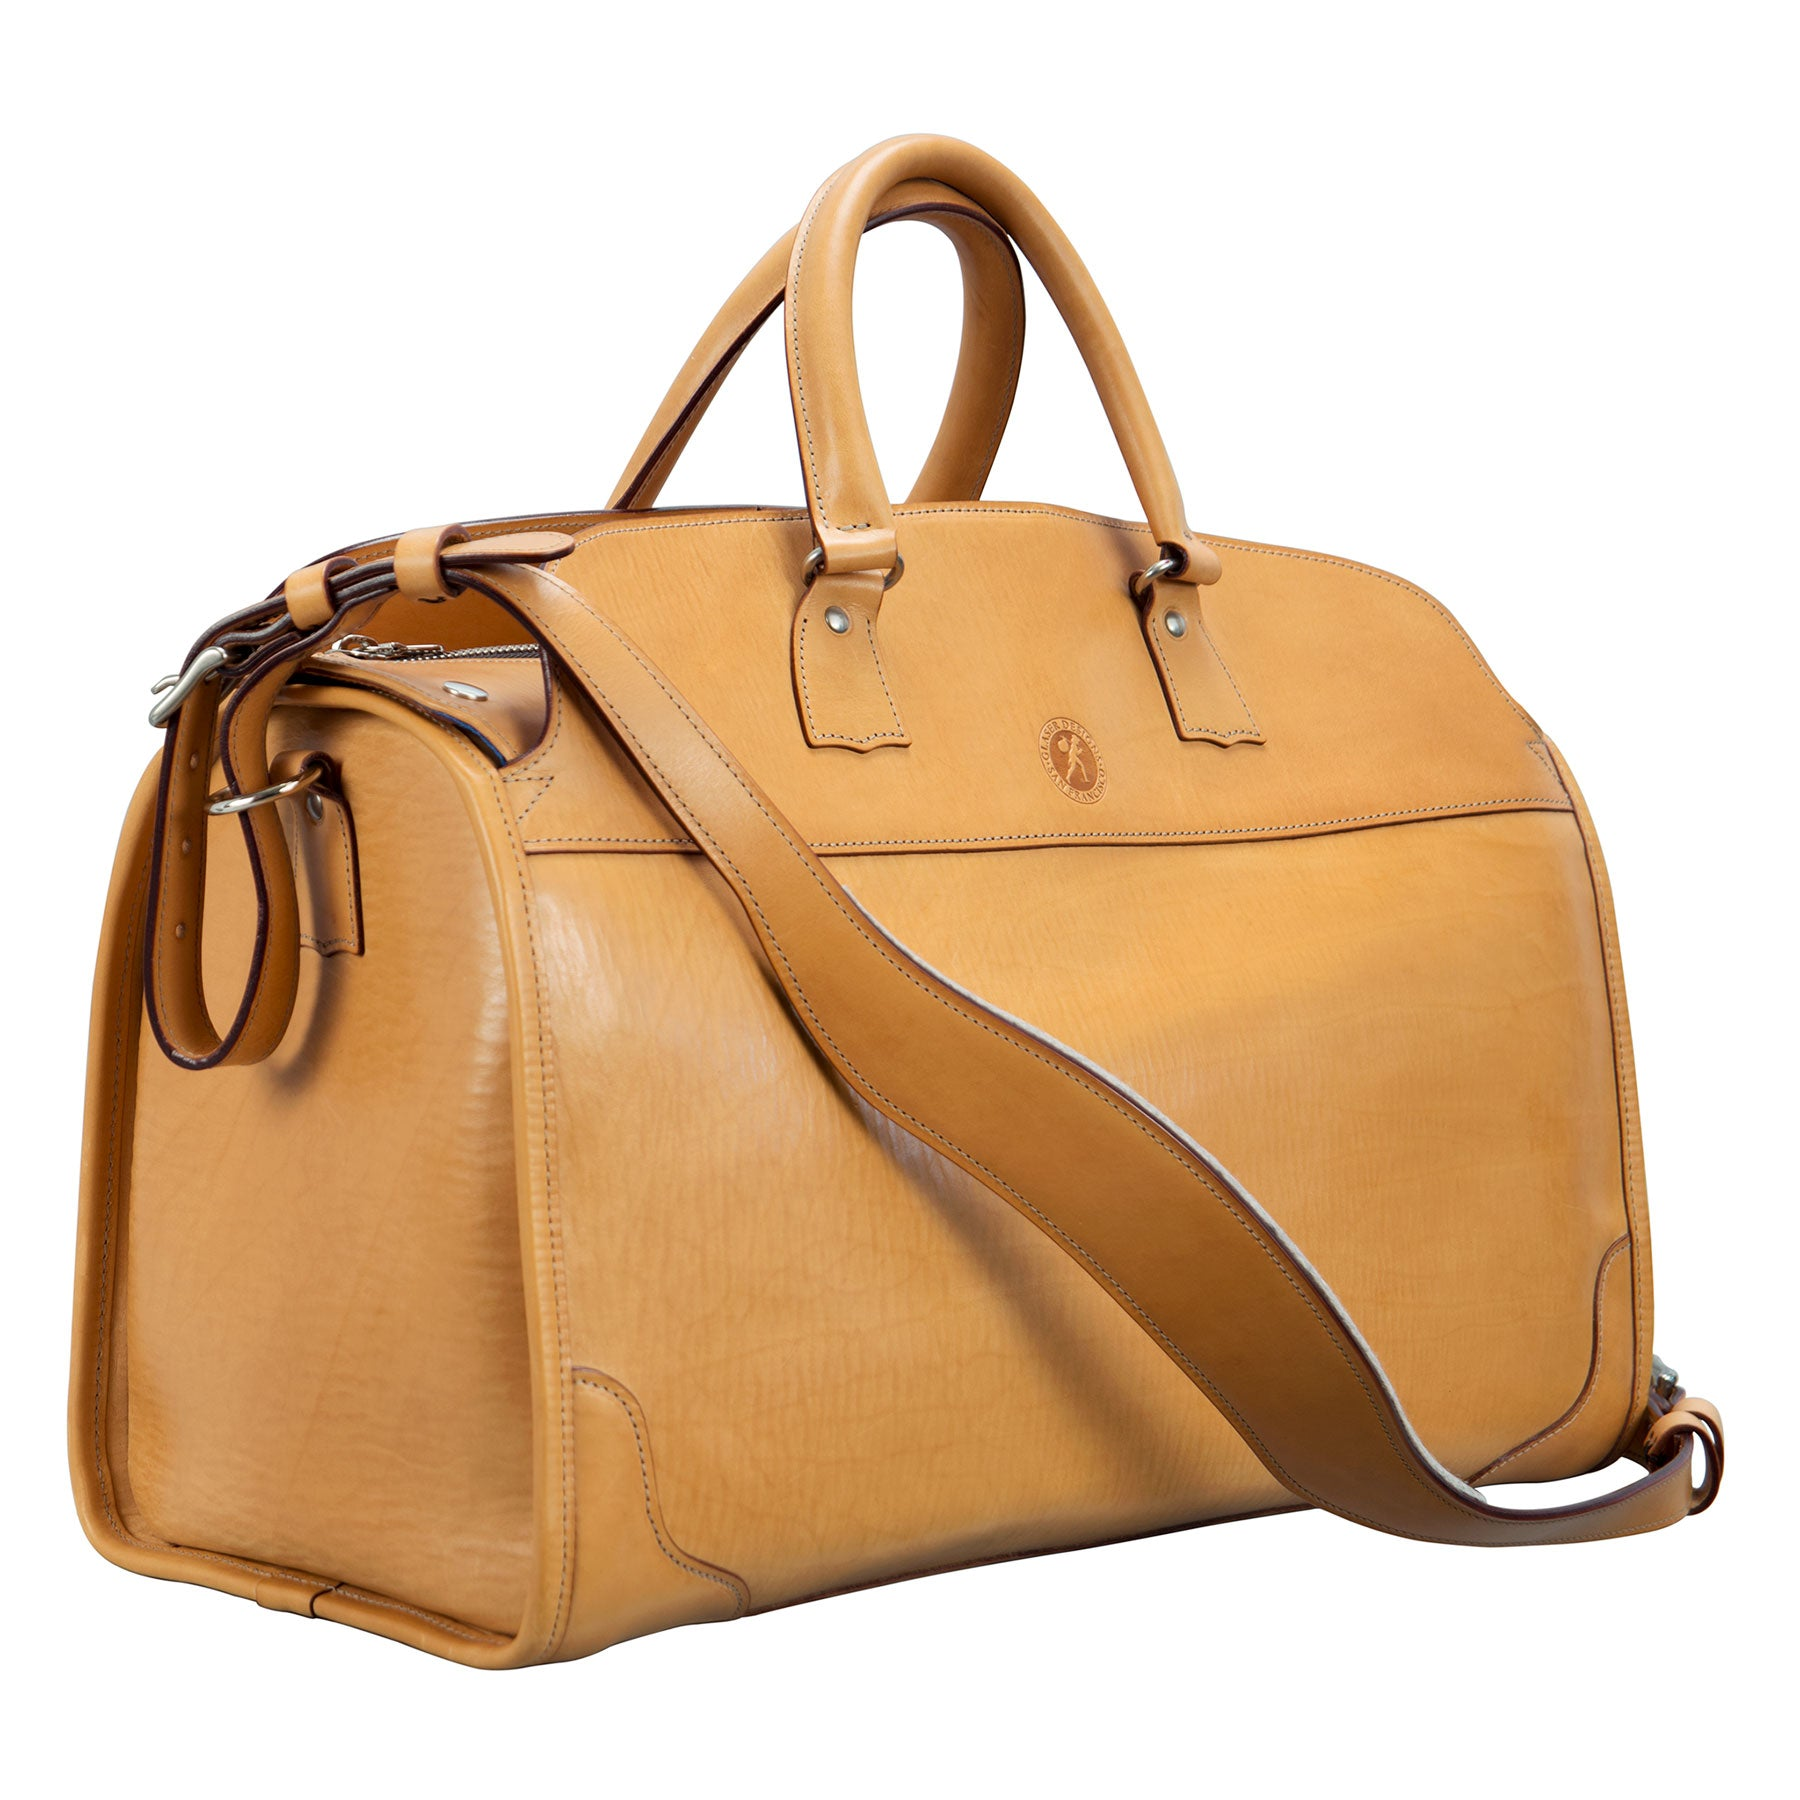 Stadium Bag: hand-burnished leather